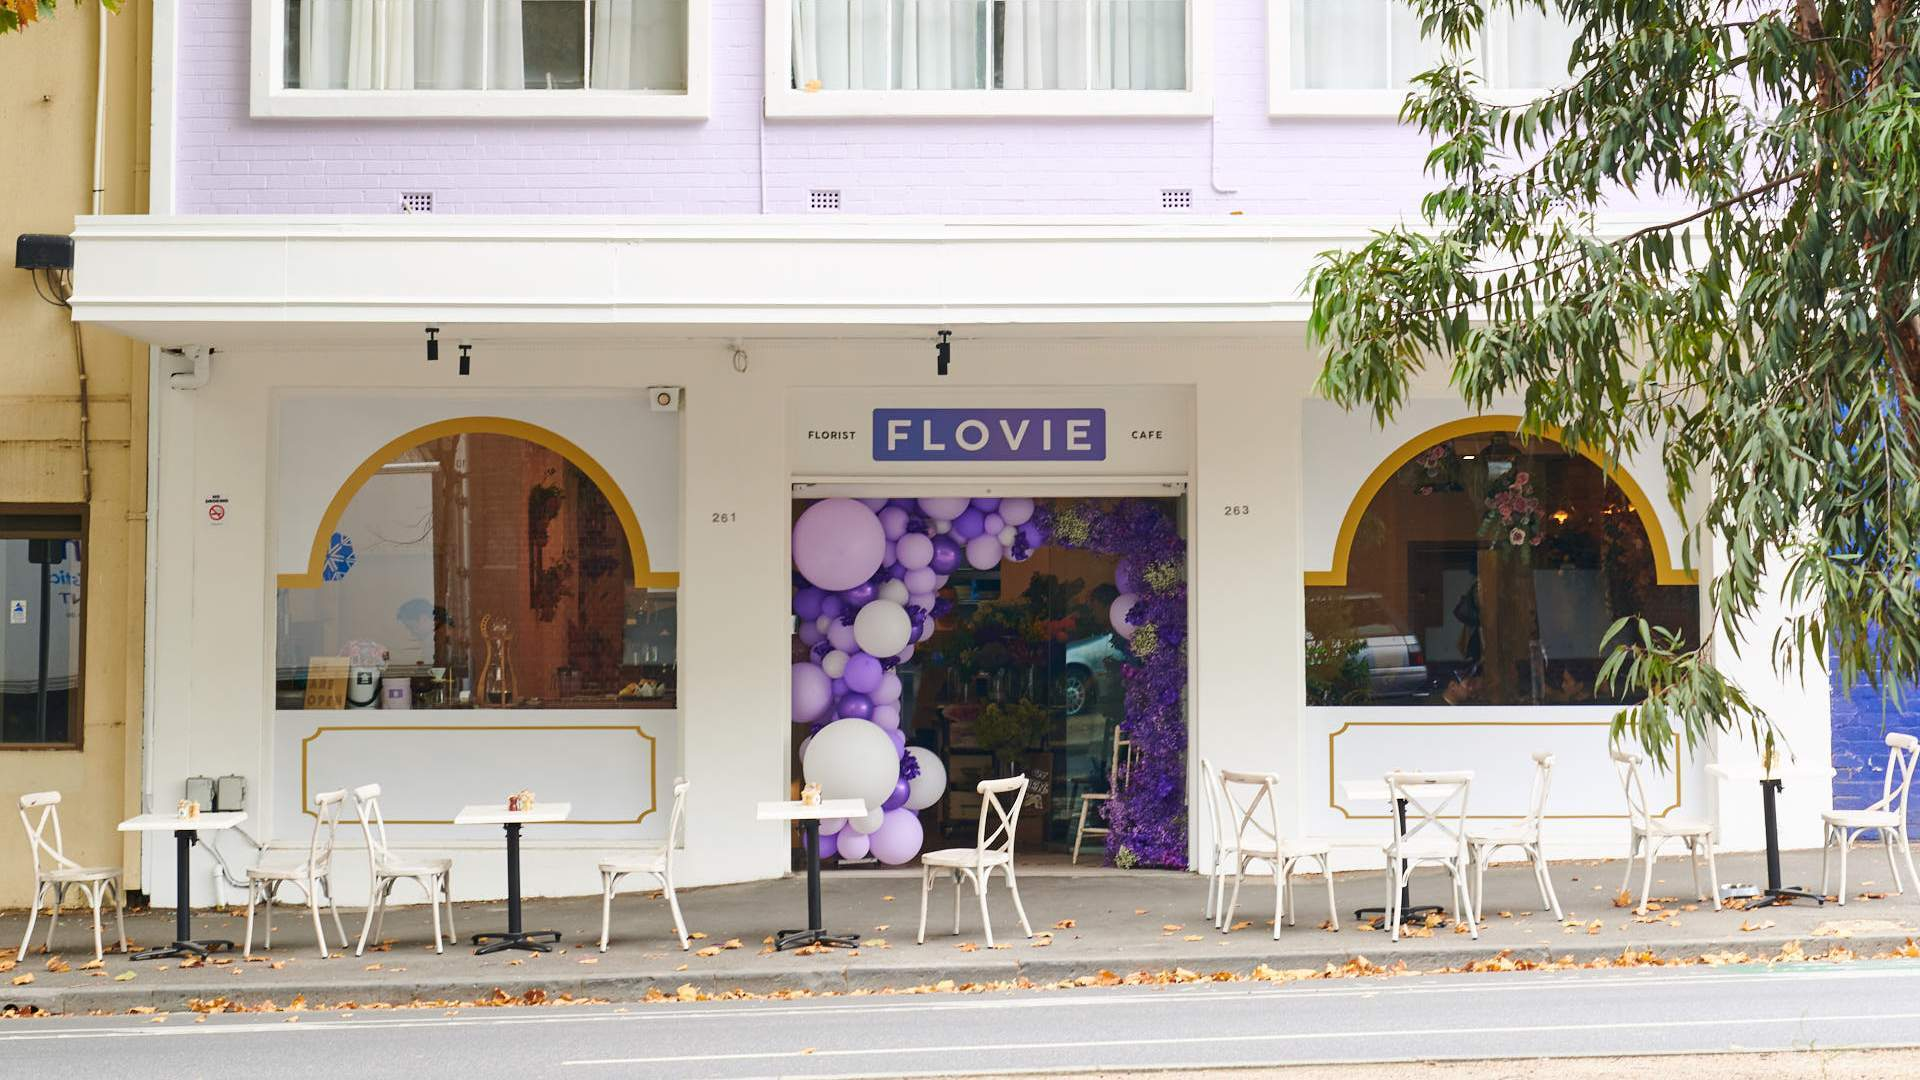 Flovie Florist Cafe